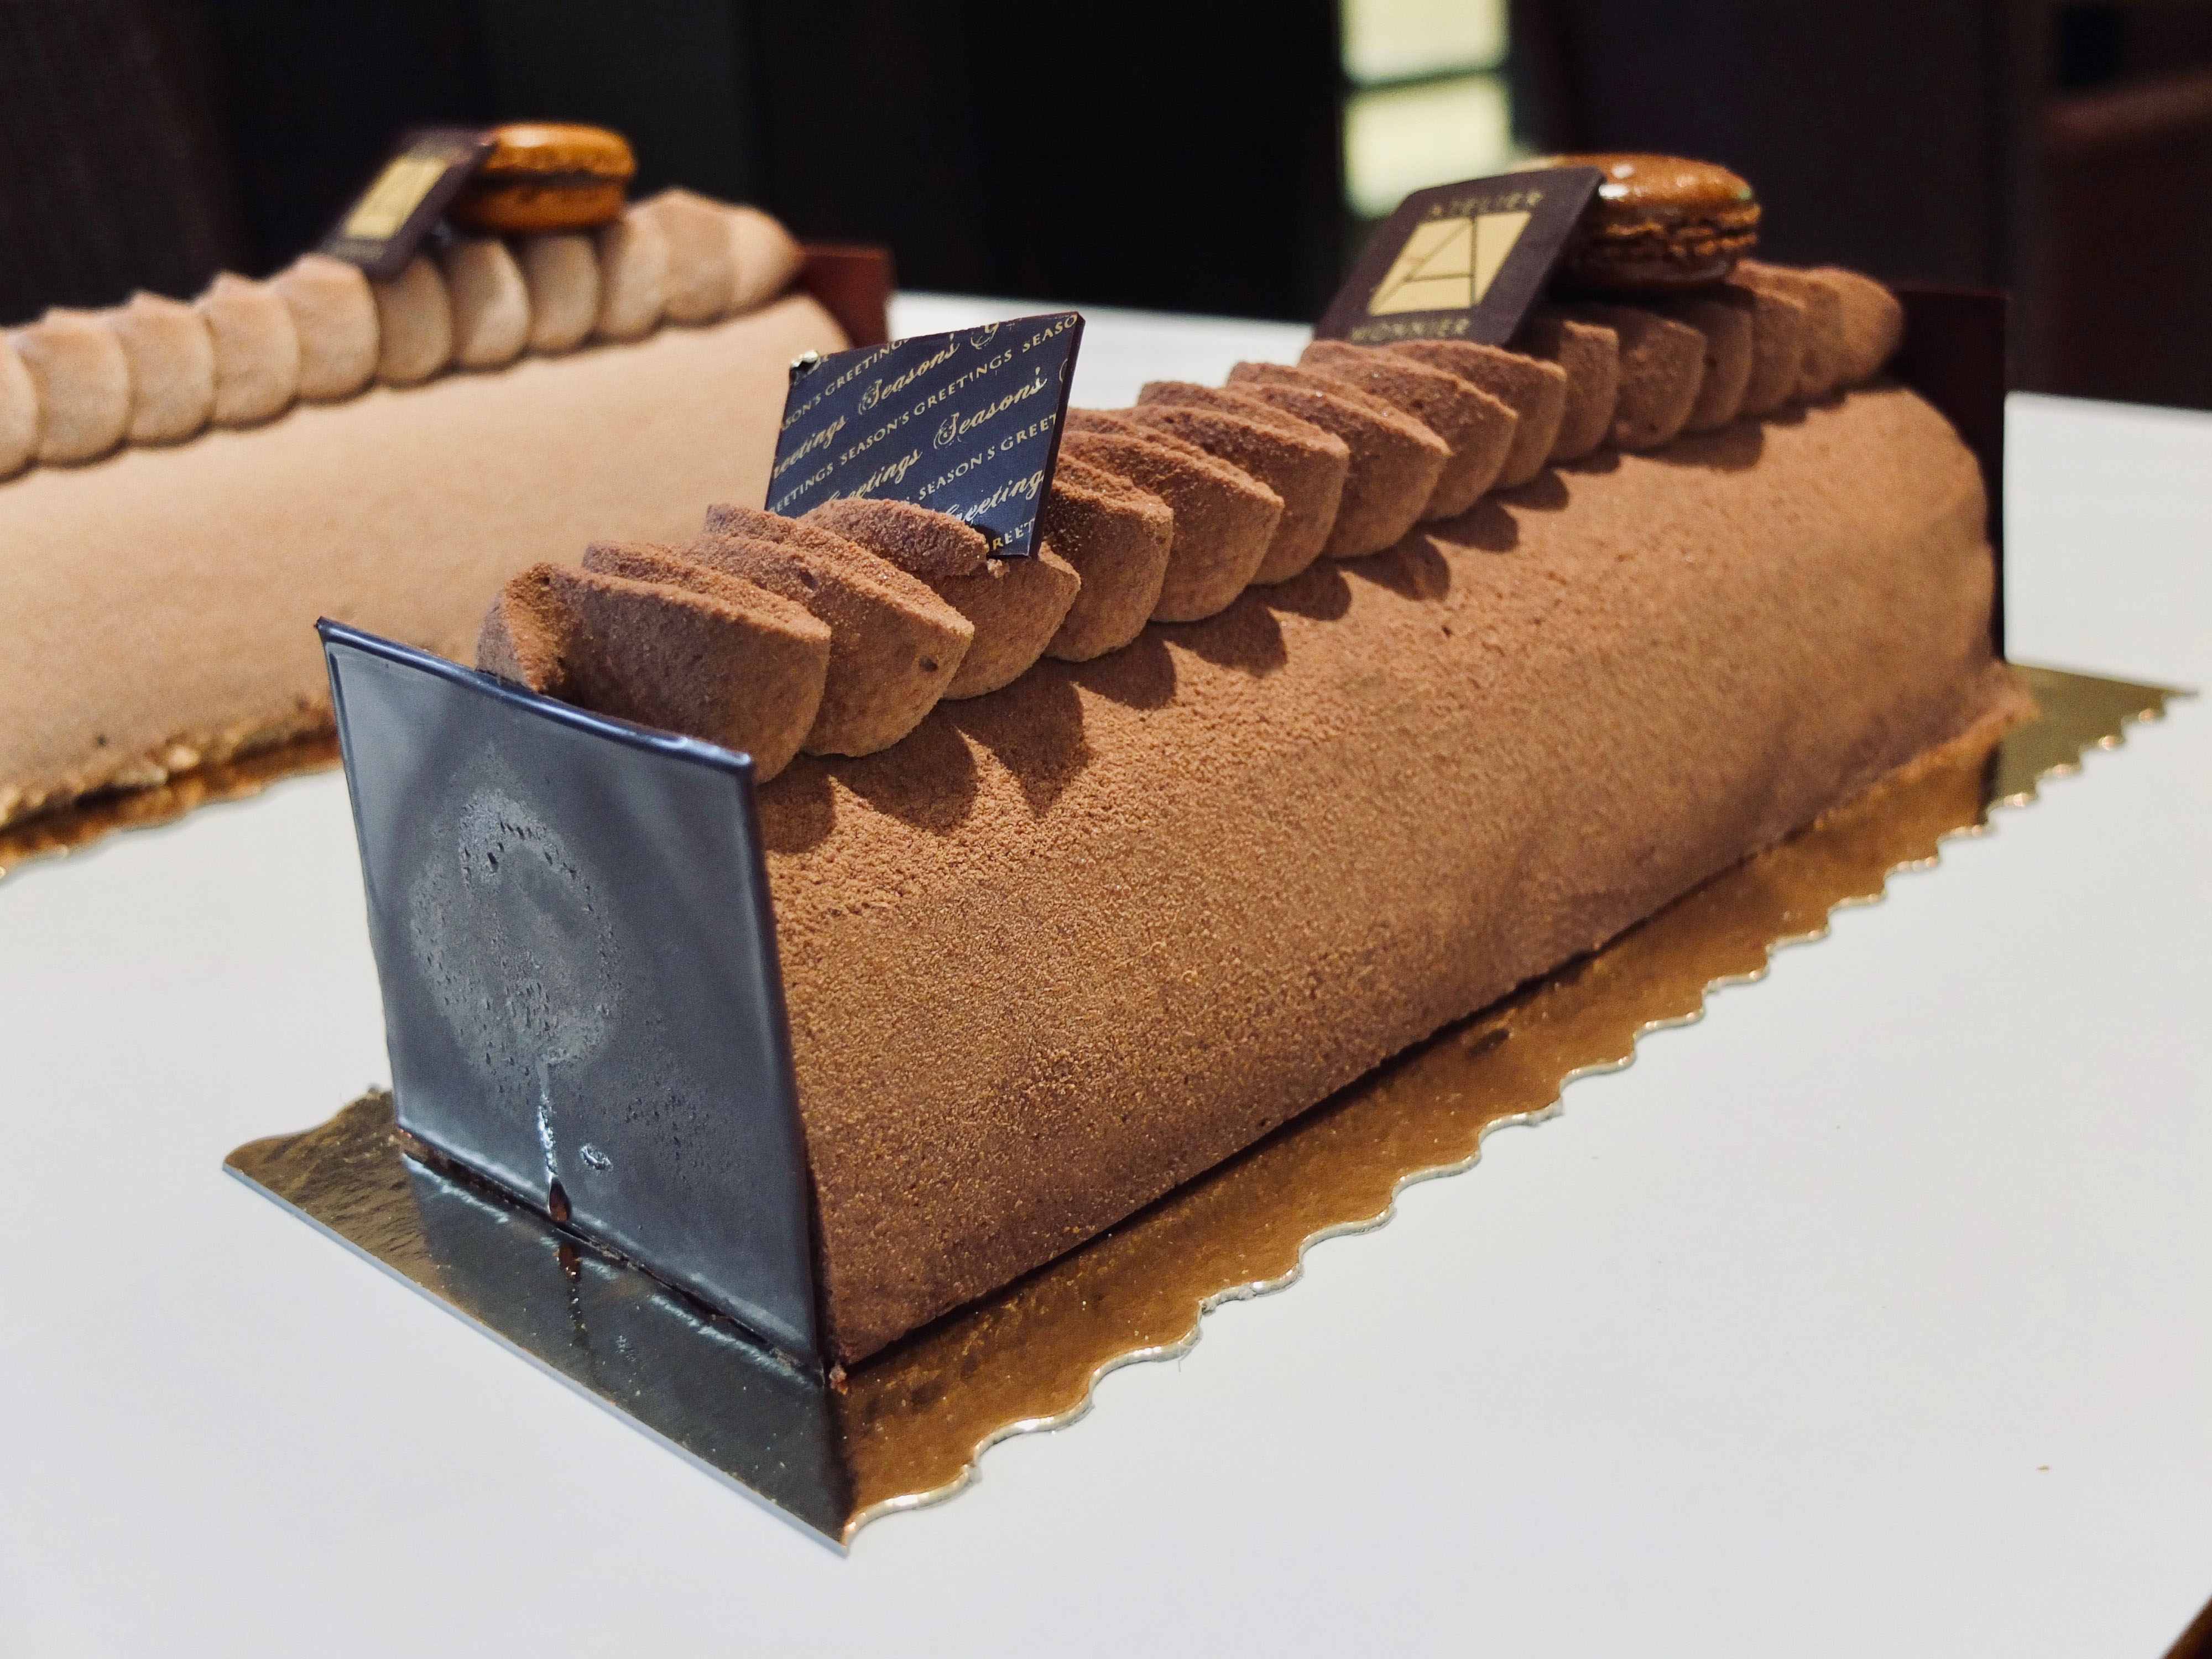 How to choose your Yule Log ? Buche de Noel - French Bakery in Miami, French restaurant miami, French food miami, café miami, coffee shop miami, catering miami, dadeland, pinecrest, brickell, south beach, miami beach, millefeuille, raspberry tart, carré crunchy, hazelnut cake, macaron, macarons, macaroons, macaroon, french macarons, parisian macarons, chocolates, chocolate truffle, belgian chocolates